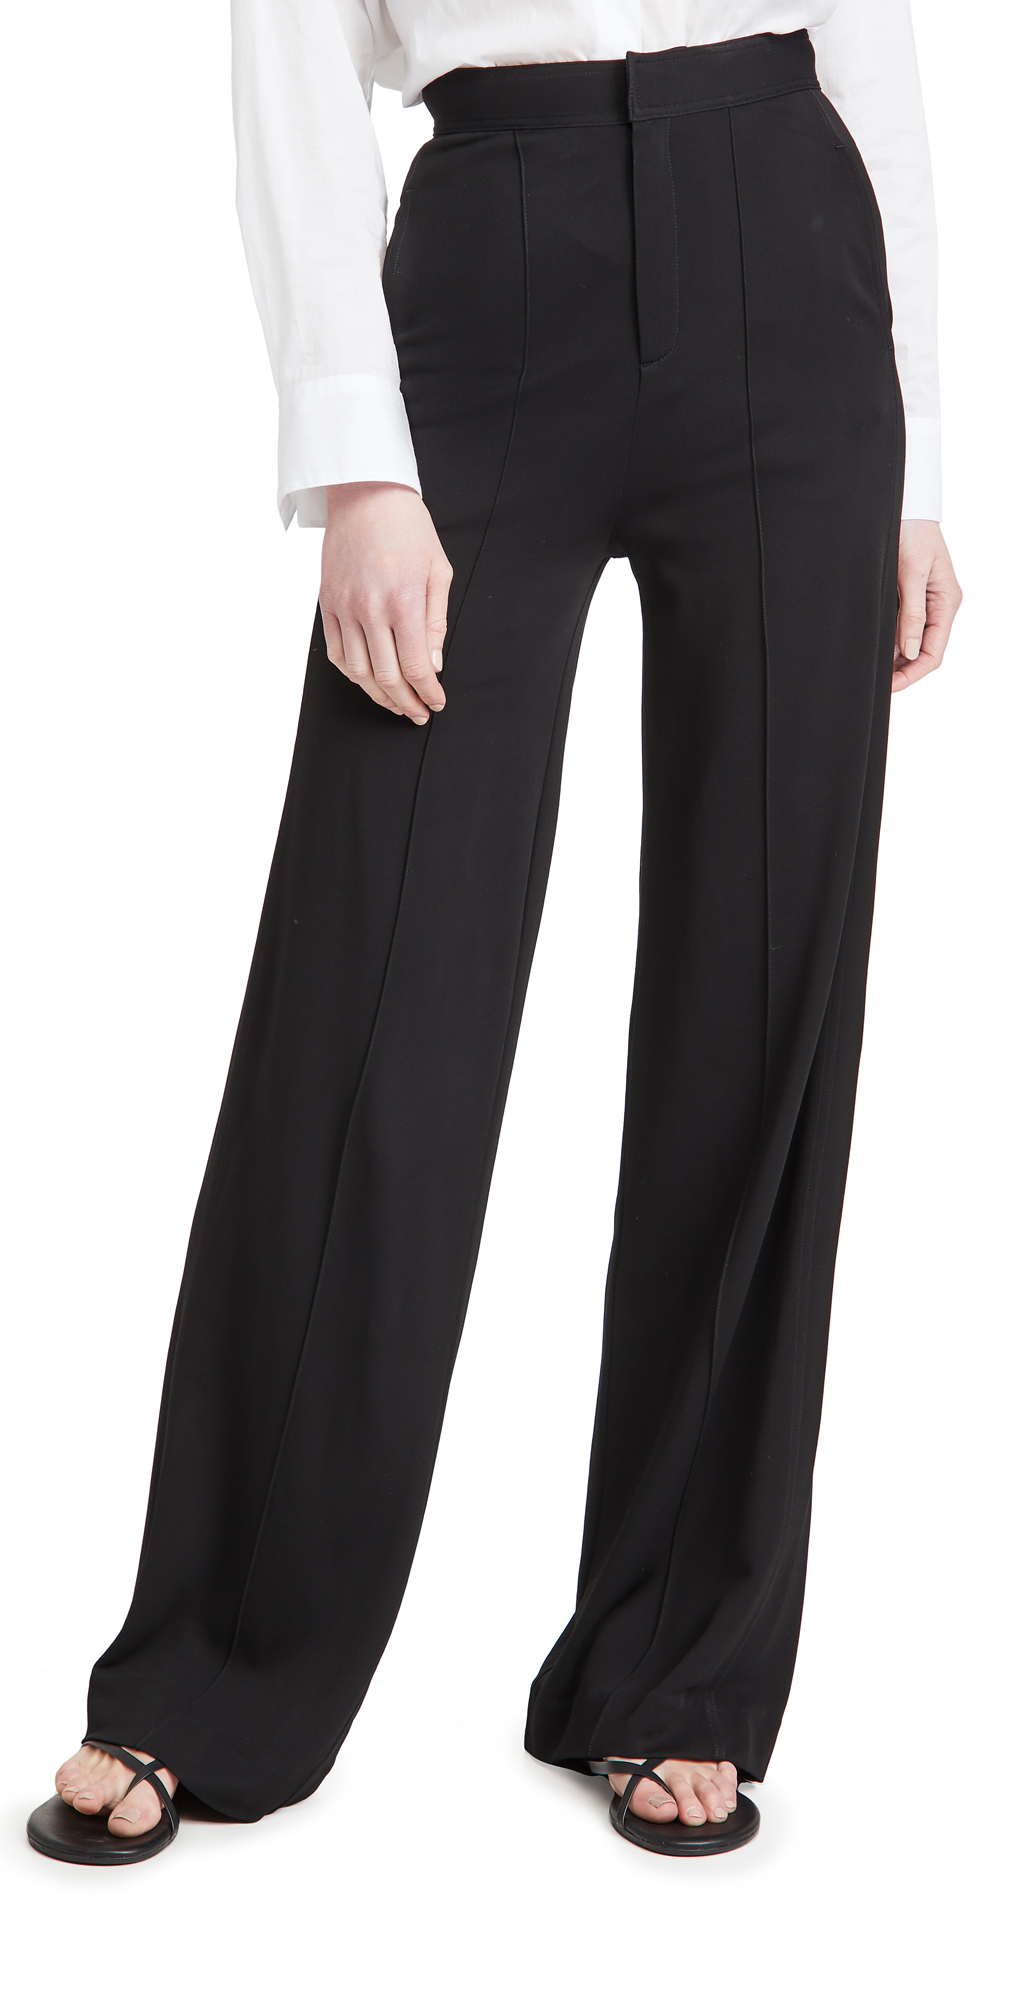 Rag & Bone STUDIO JERSEY TROUSERS